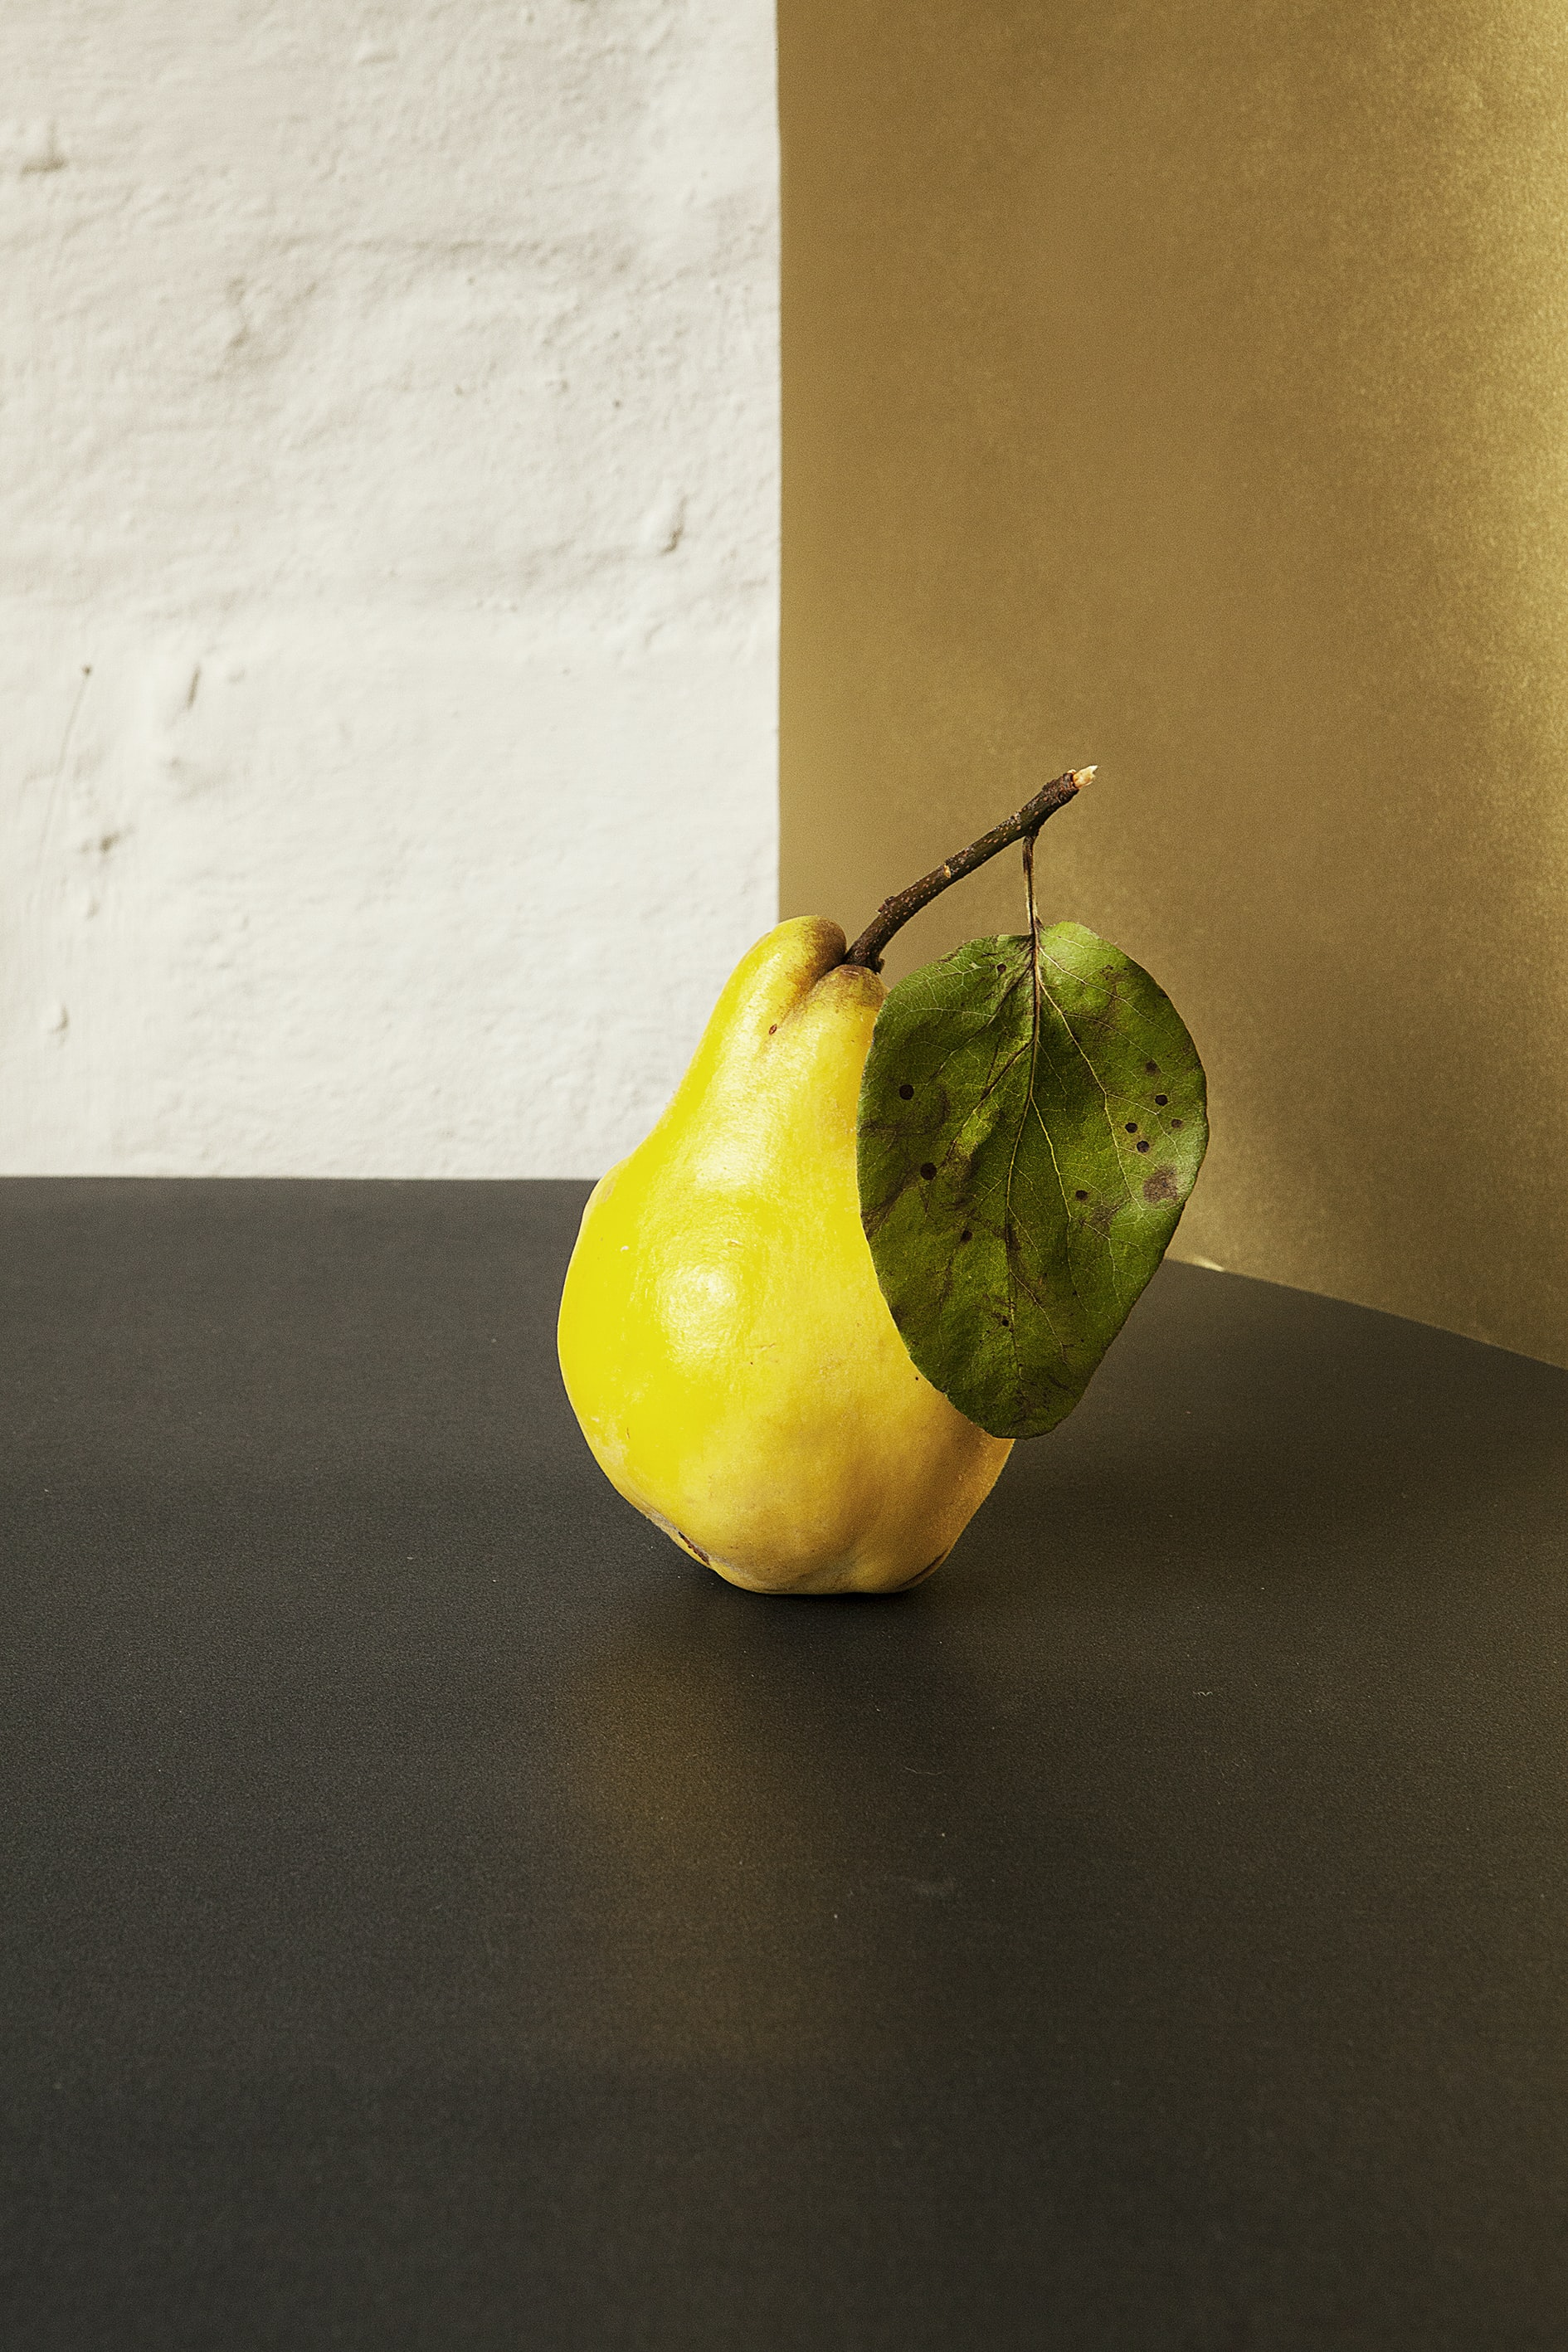 Freshly picked juicy yellow pear with a leaf on a table